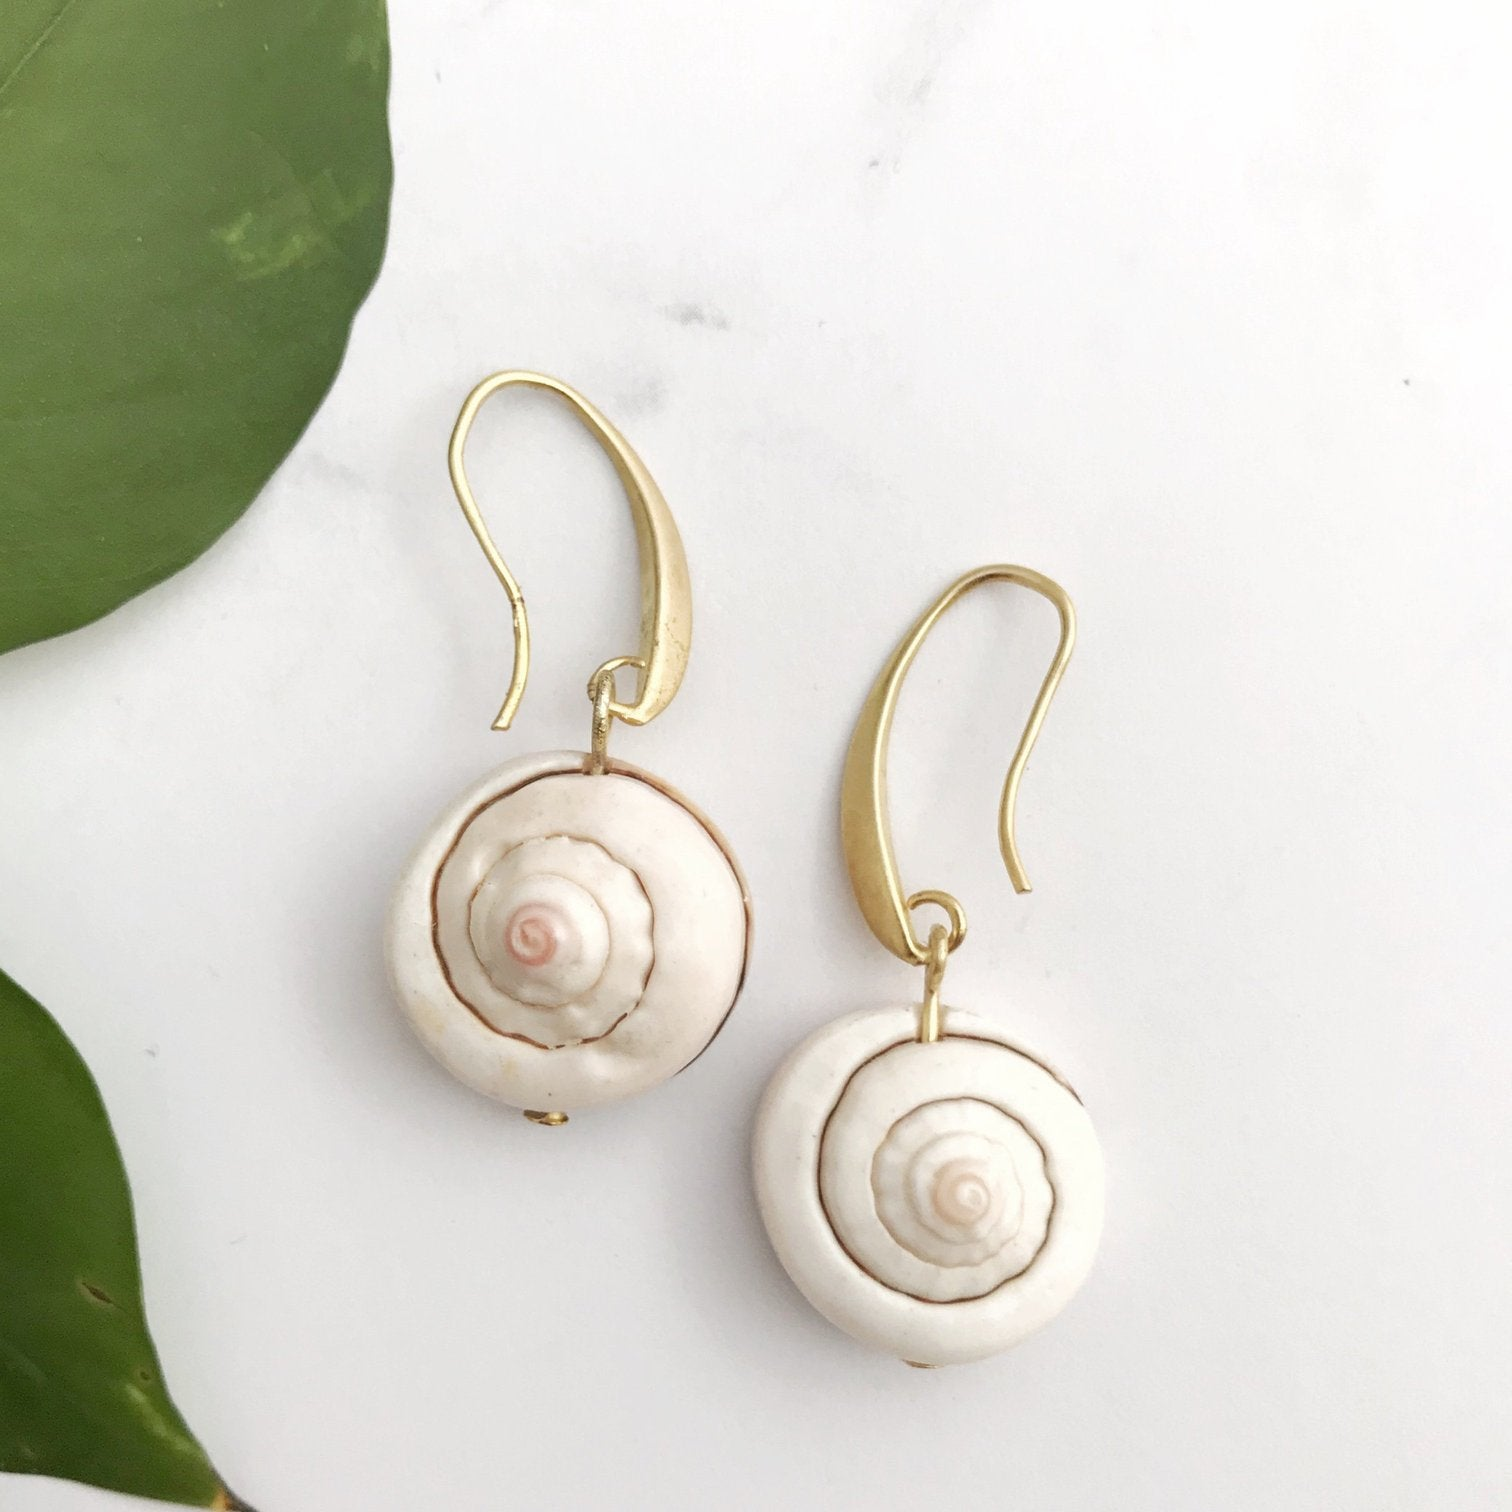 Whole Seashell Earrings